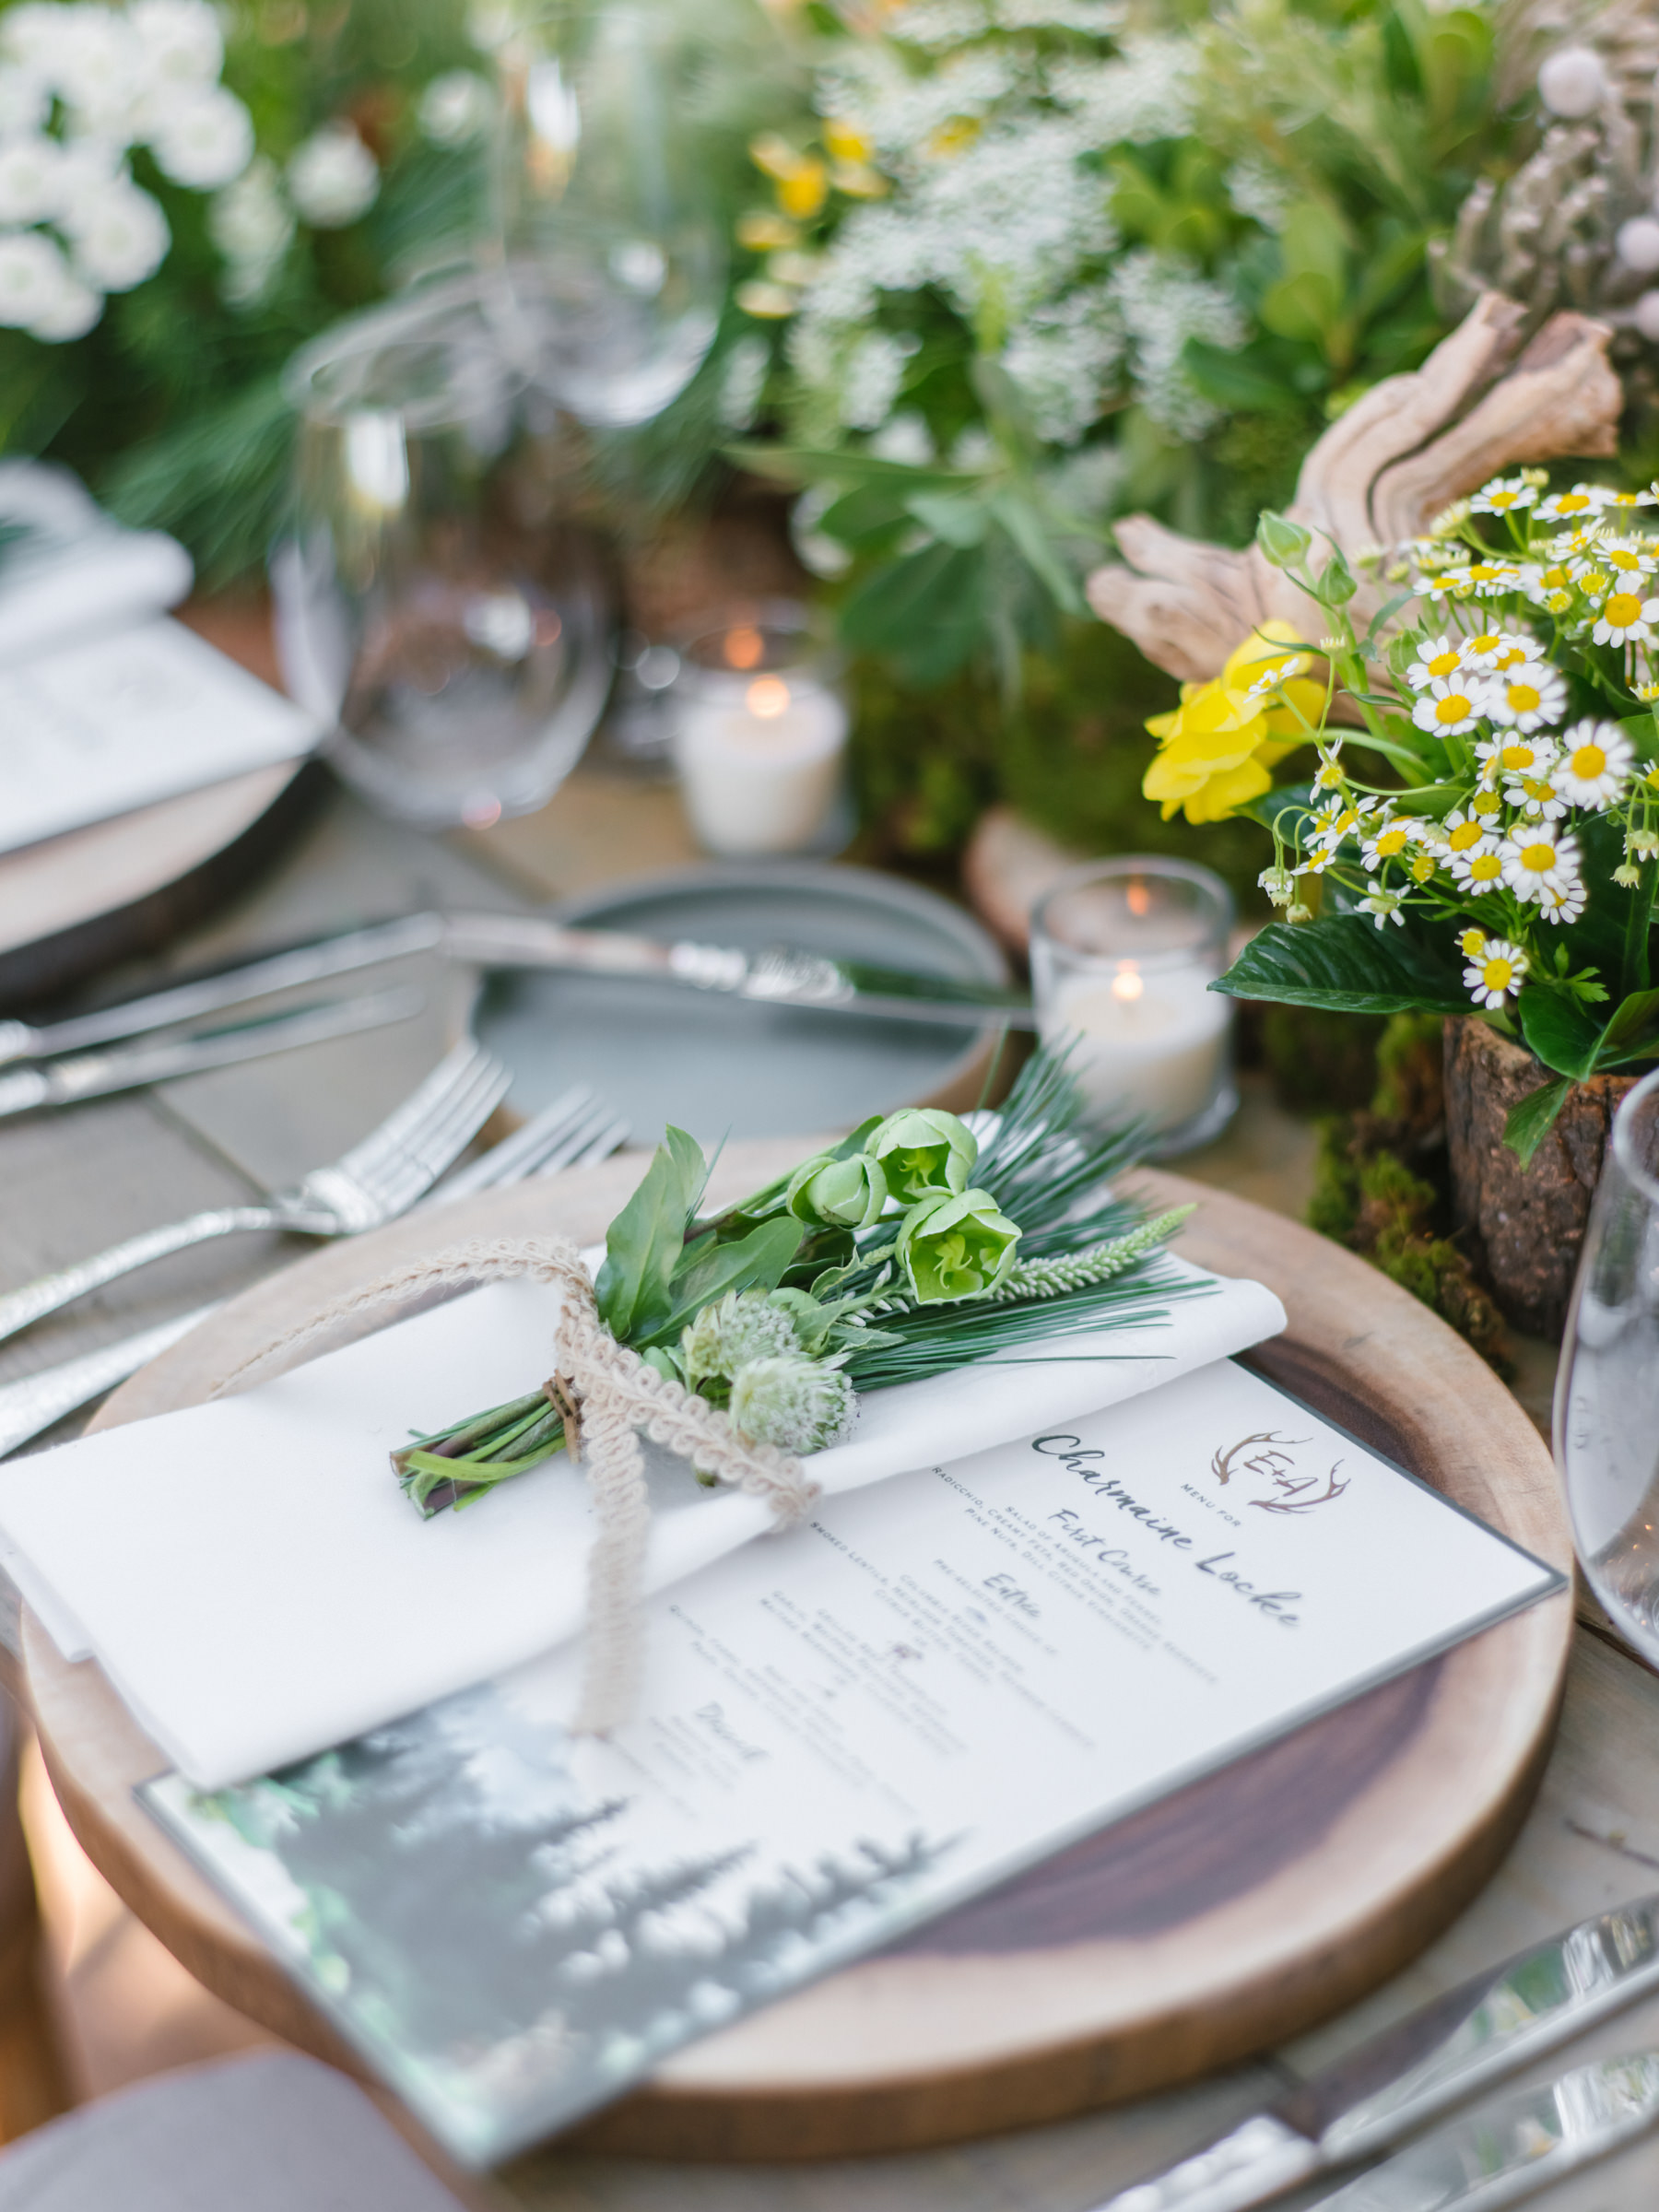 place-setting-with-menu-and-floral-decor-in-yellow-white-and-green-photo-by-amy-and-stuart-photography